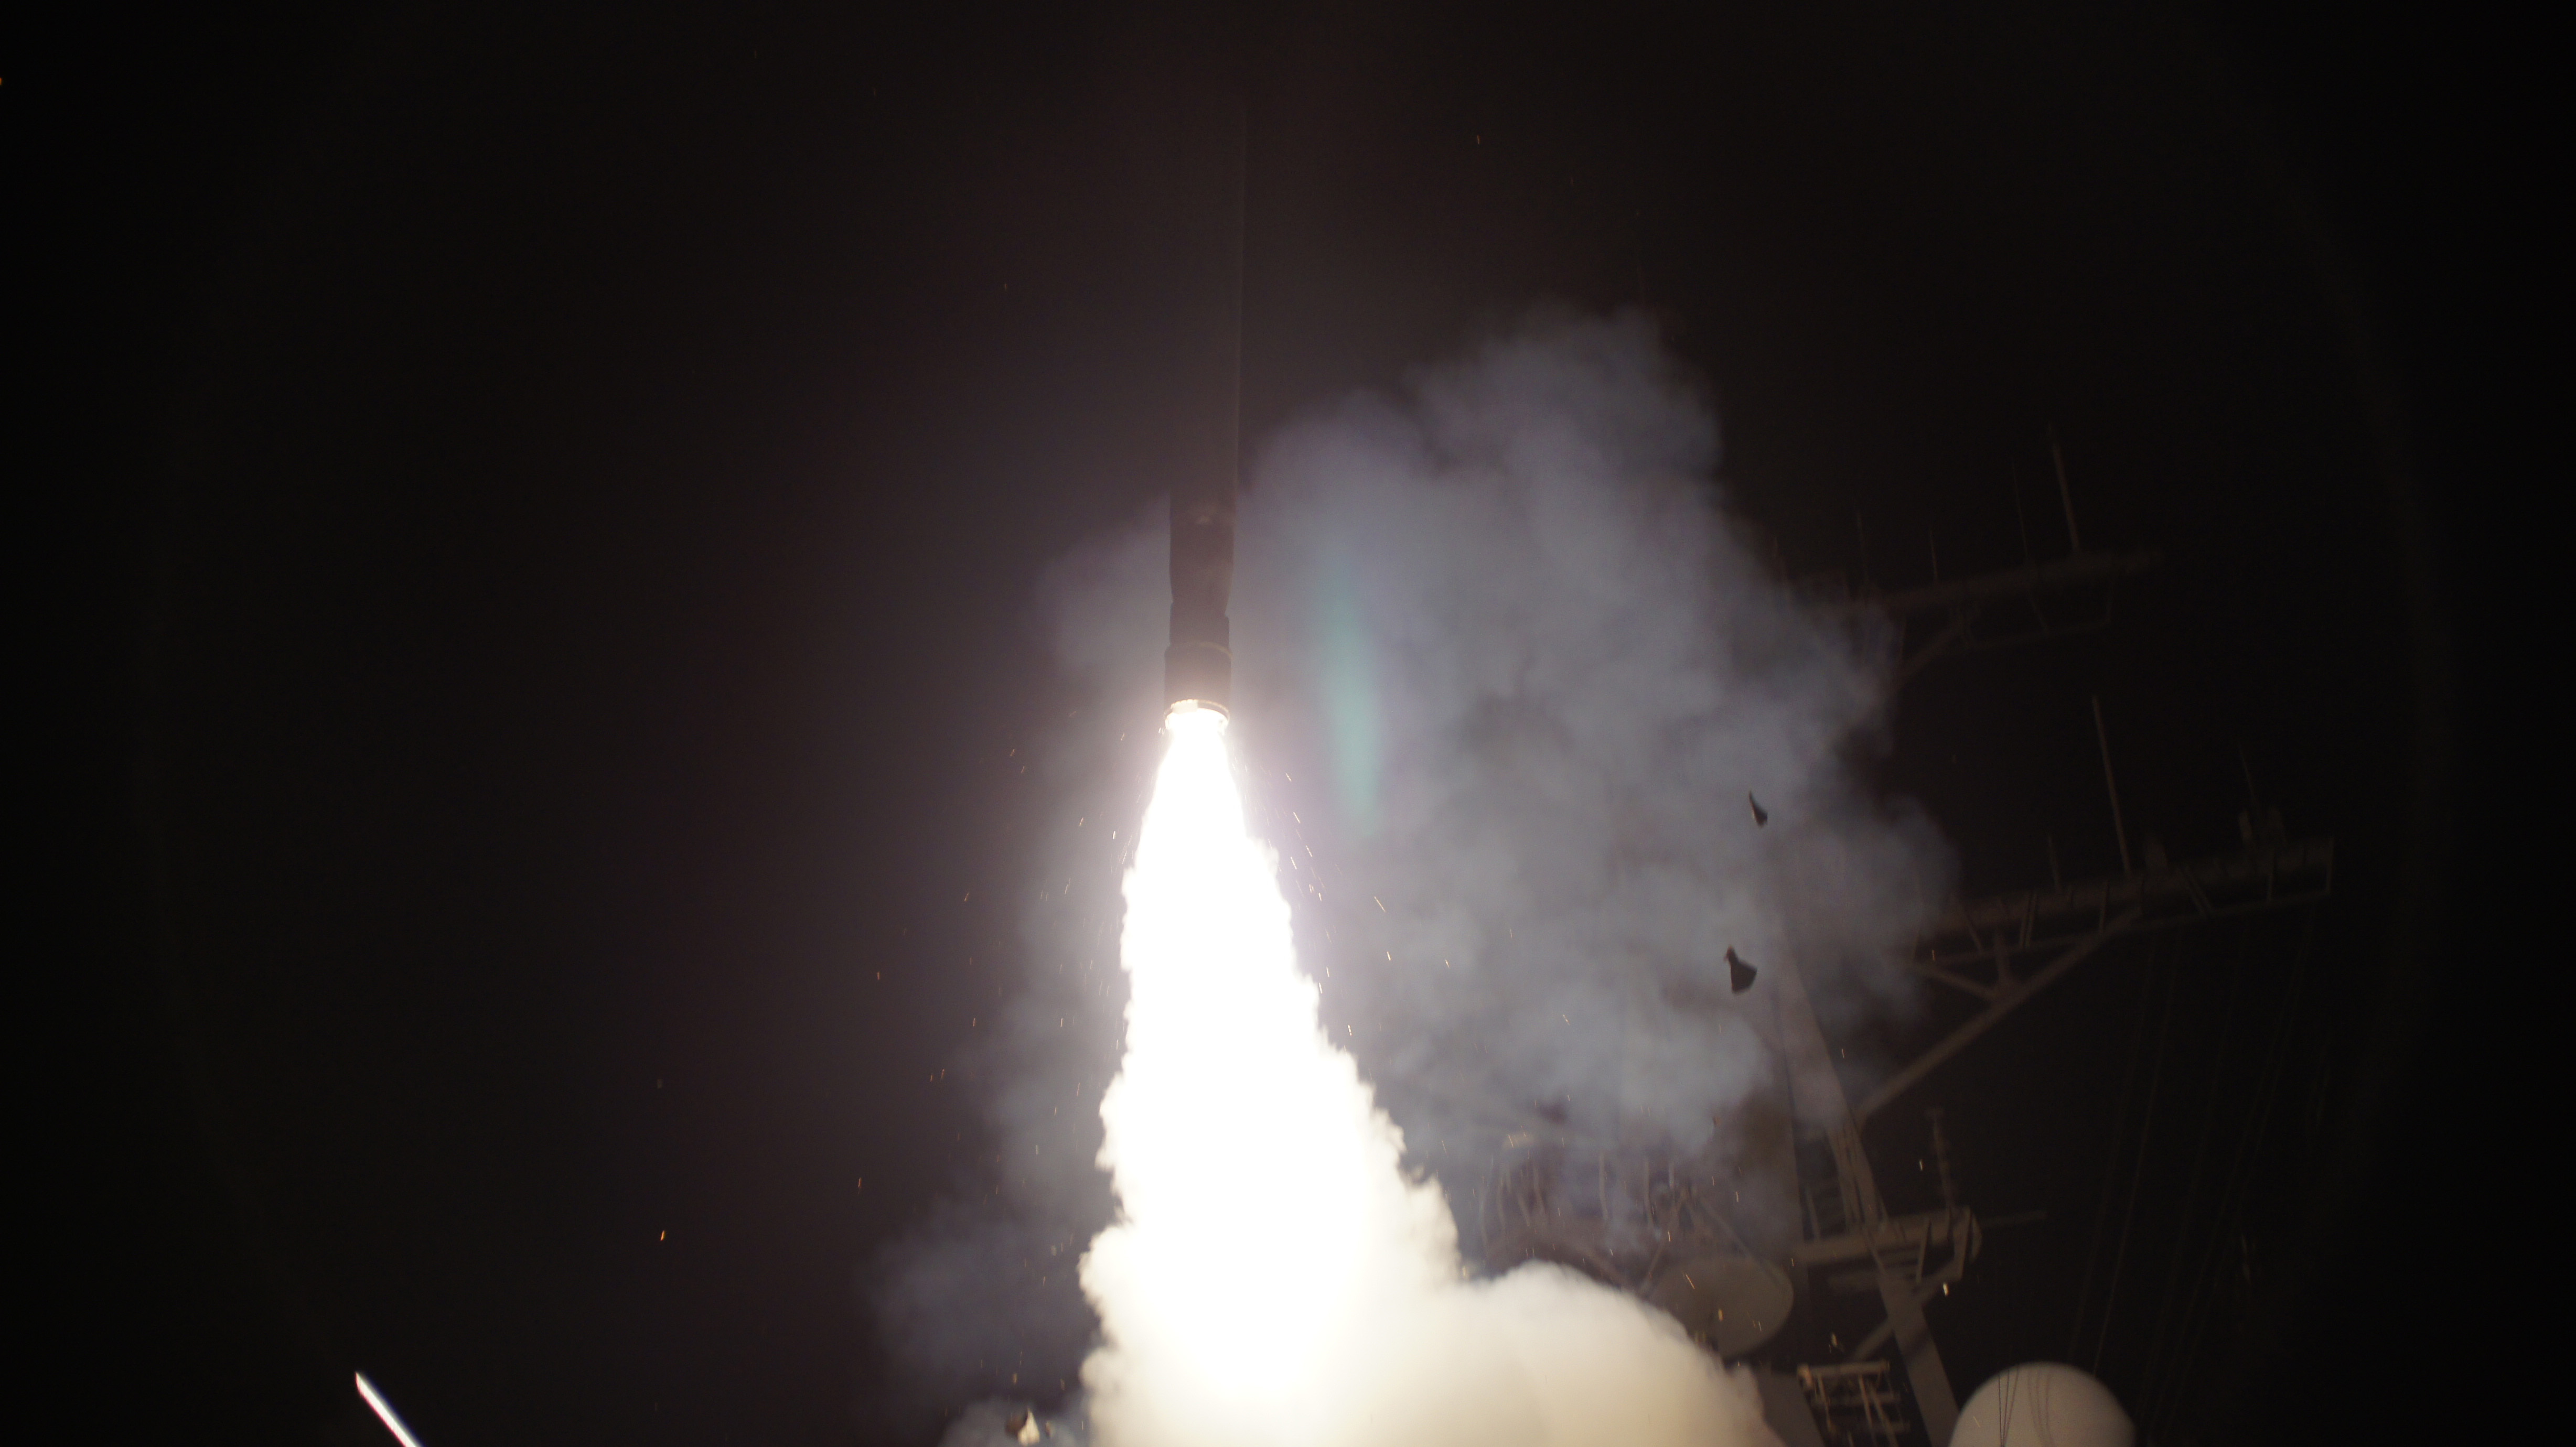 The U.S. attacked targets inside Syria early Tuesday with Tomahawk missiles like this one, shown being launched against Libya from a U.S. Navy warship in the Mediterranean Sea in 2011.